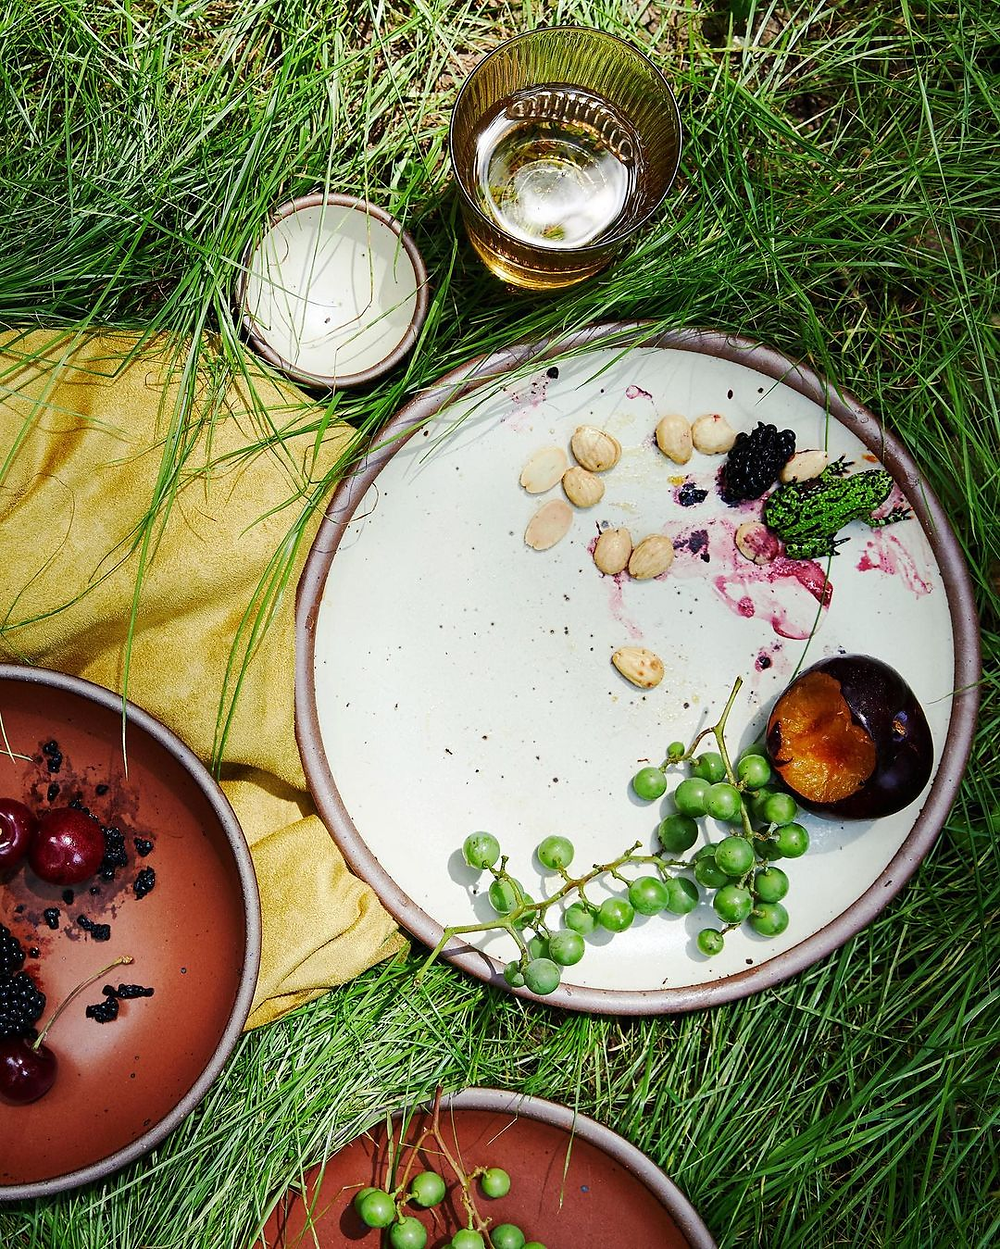 stoneware plates on grass with food on it